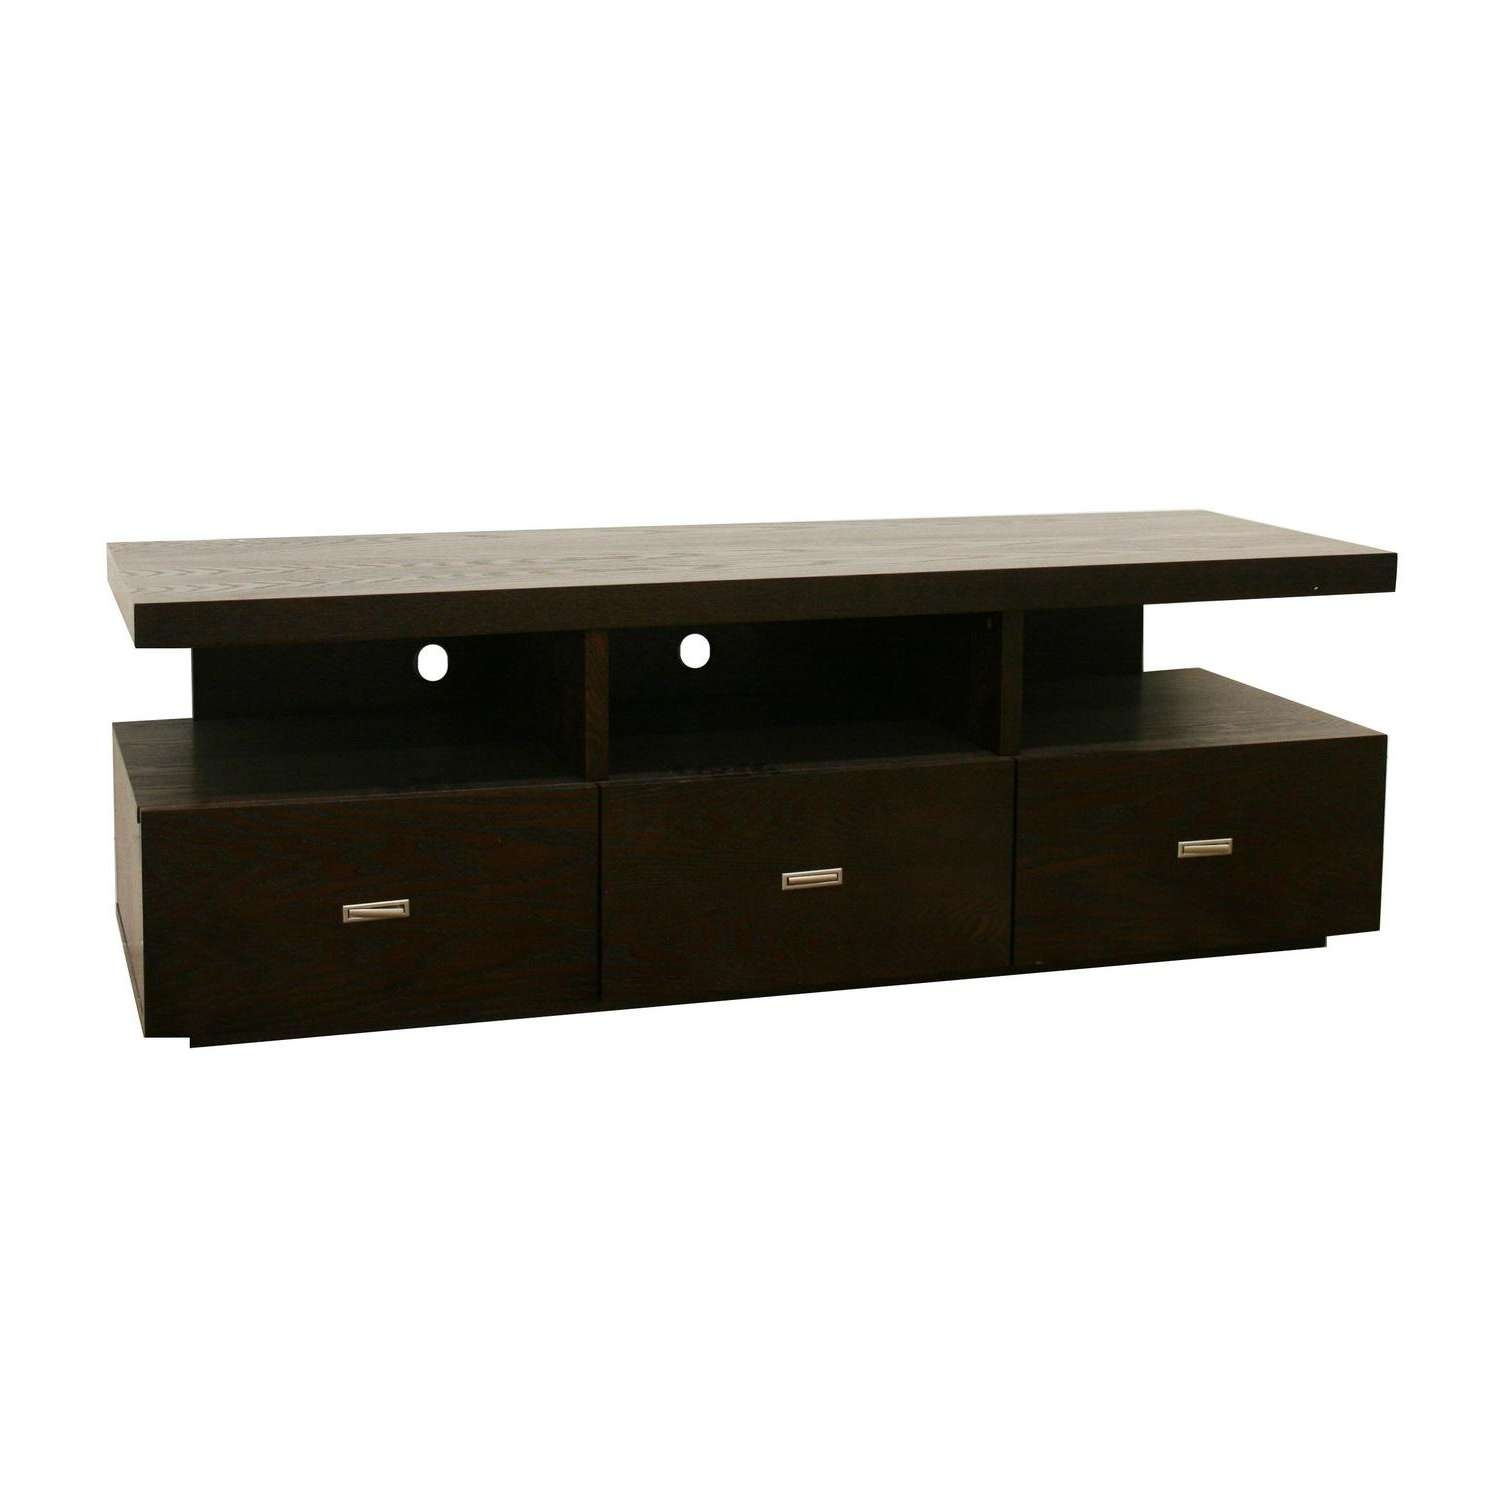 Thinking Of Buying A Dark Wood Tv Stand? Follow These Buyr's Guide Intended For Dark Wood Tv Stands (View 12 of 20)